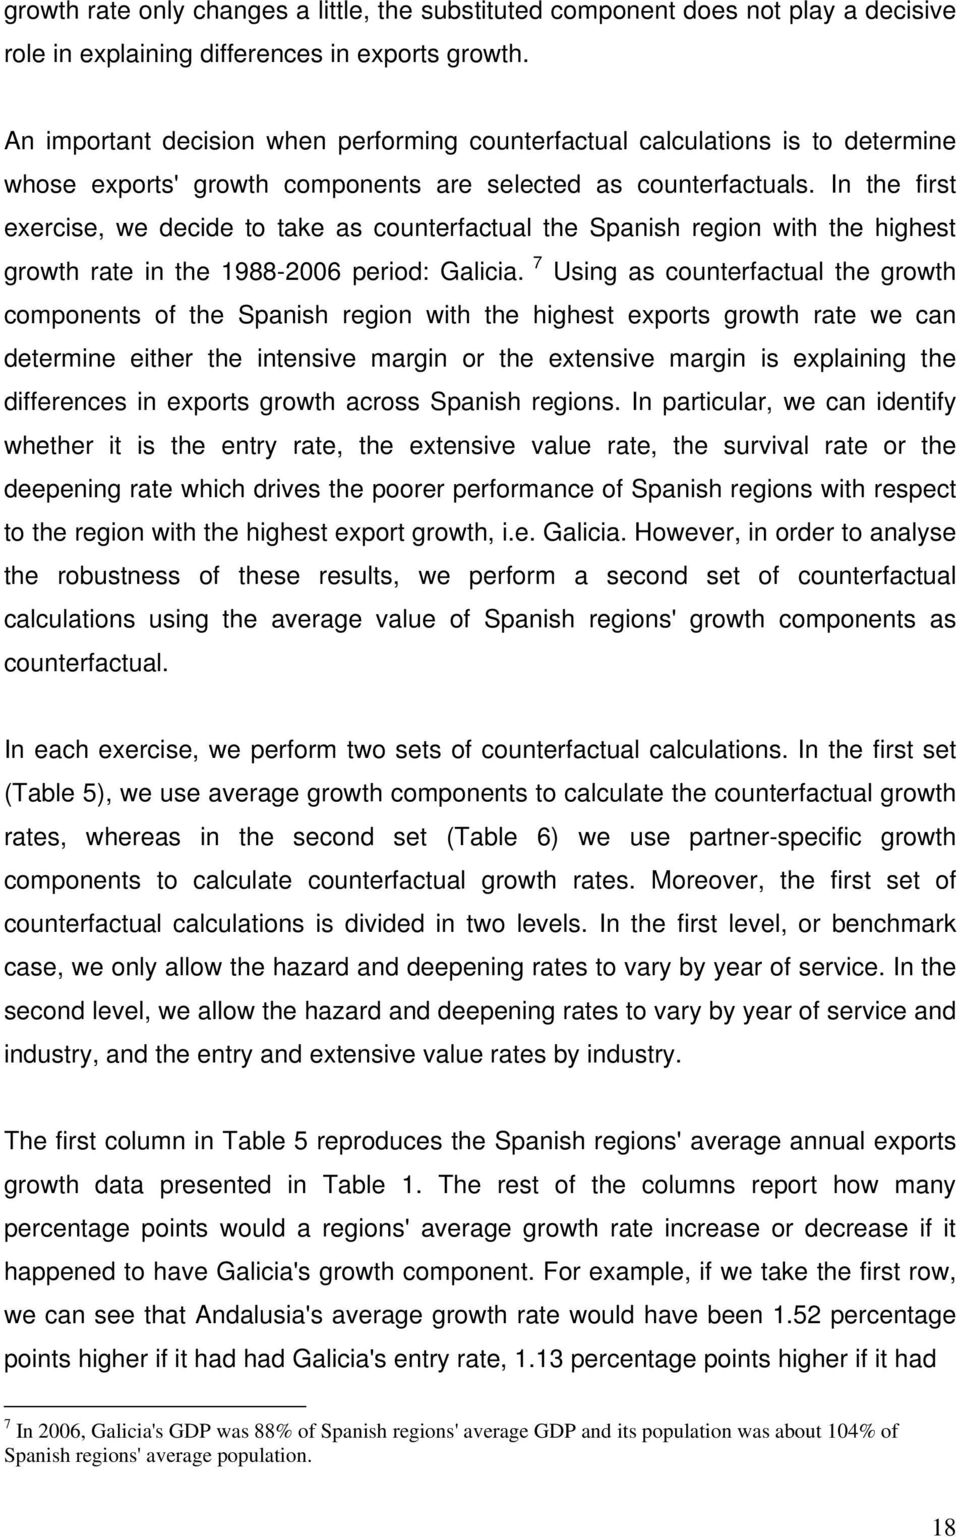 In the first exercise, we decide to take as counterfactual the Spanish region with the highest growth rate in the 1988-2006 period: Galicia.